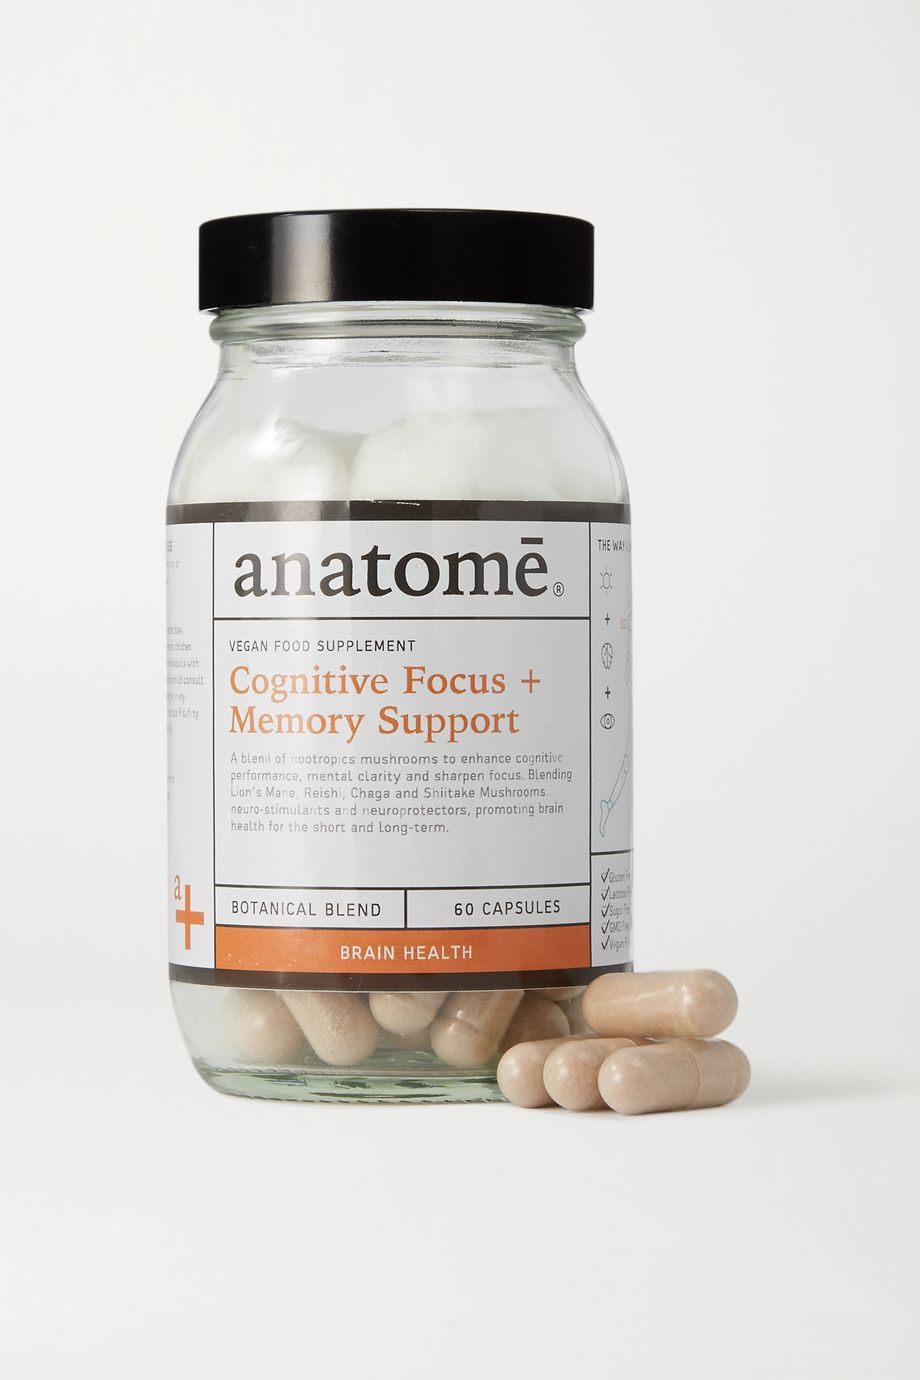 anatomē Vegan Food Supplement - Cognitive Focus + Energy (60 capsules)